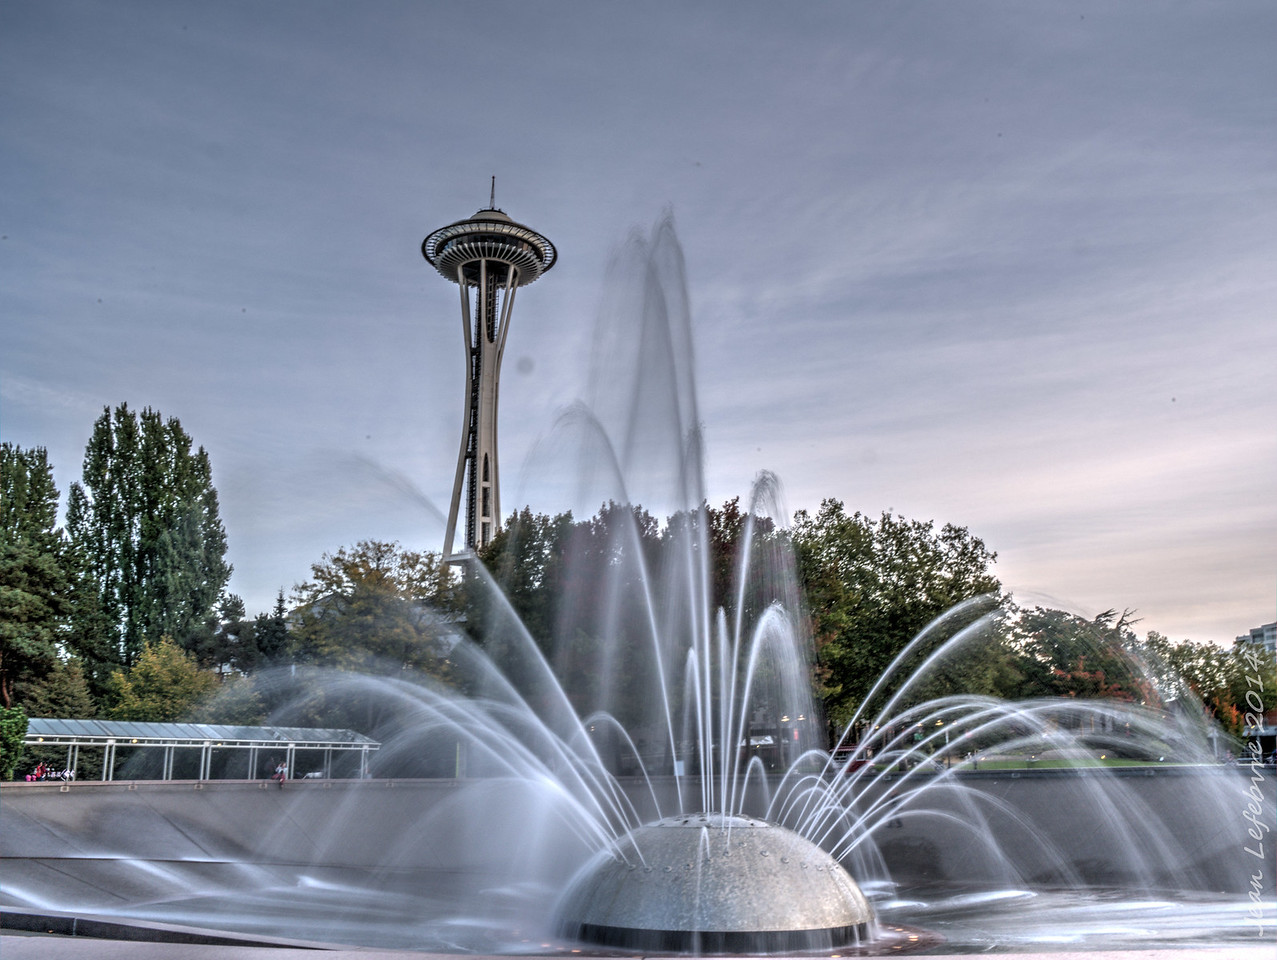 Seattle_D2_51of22-141016-42_HDR